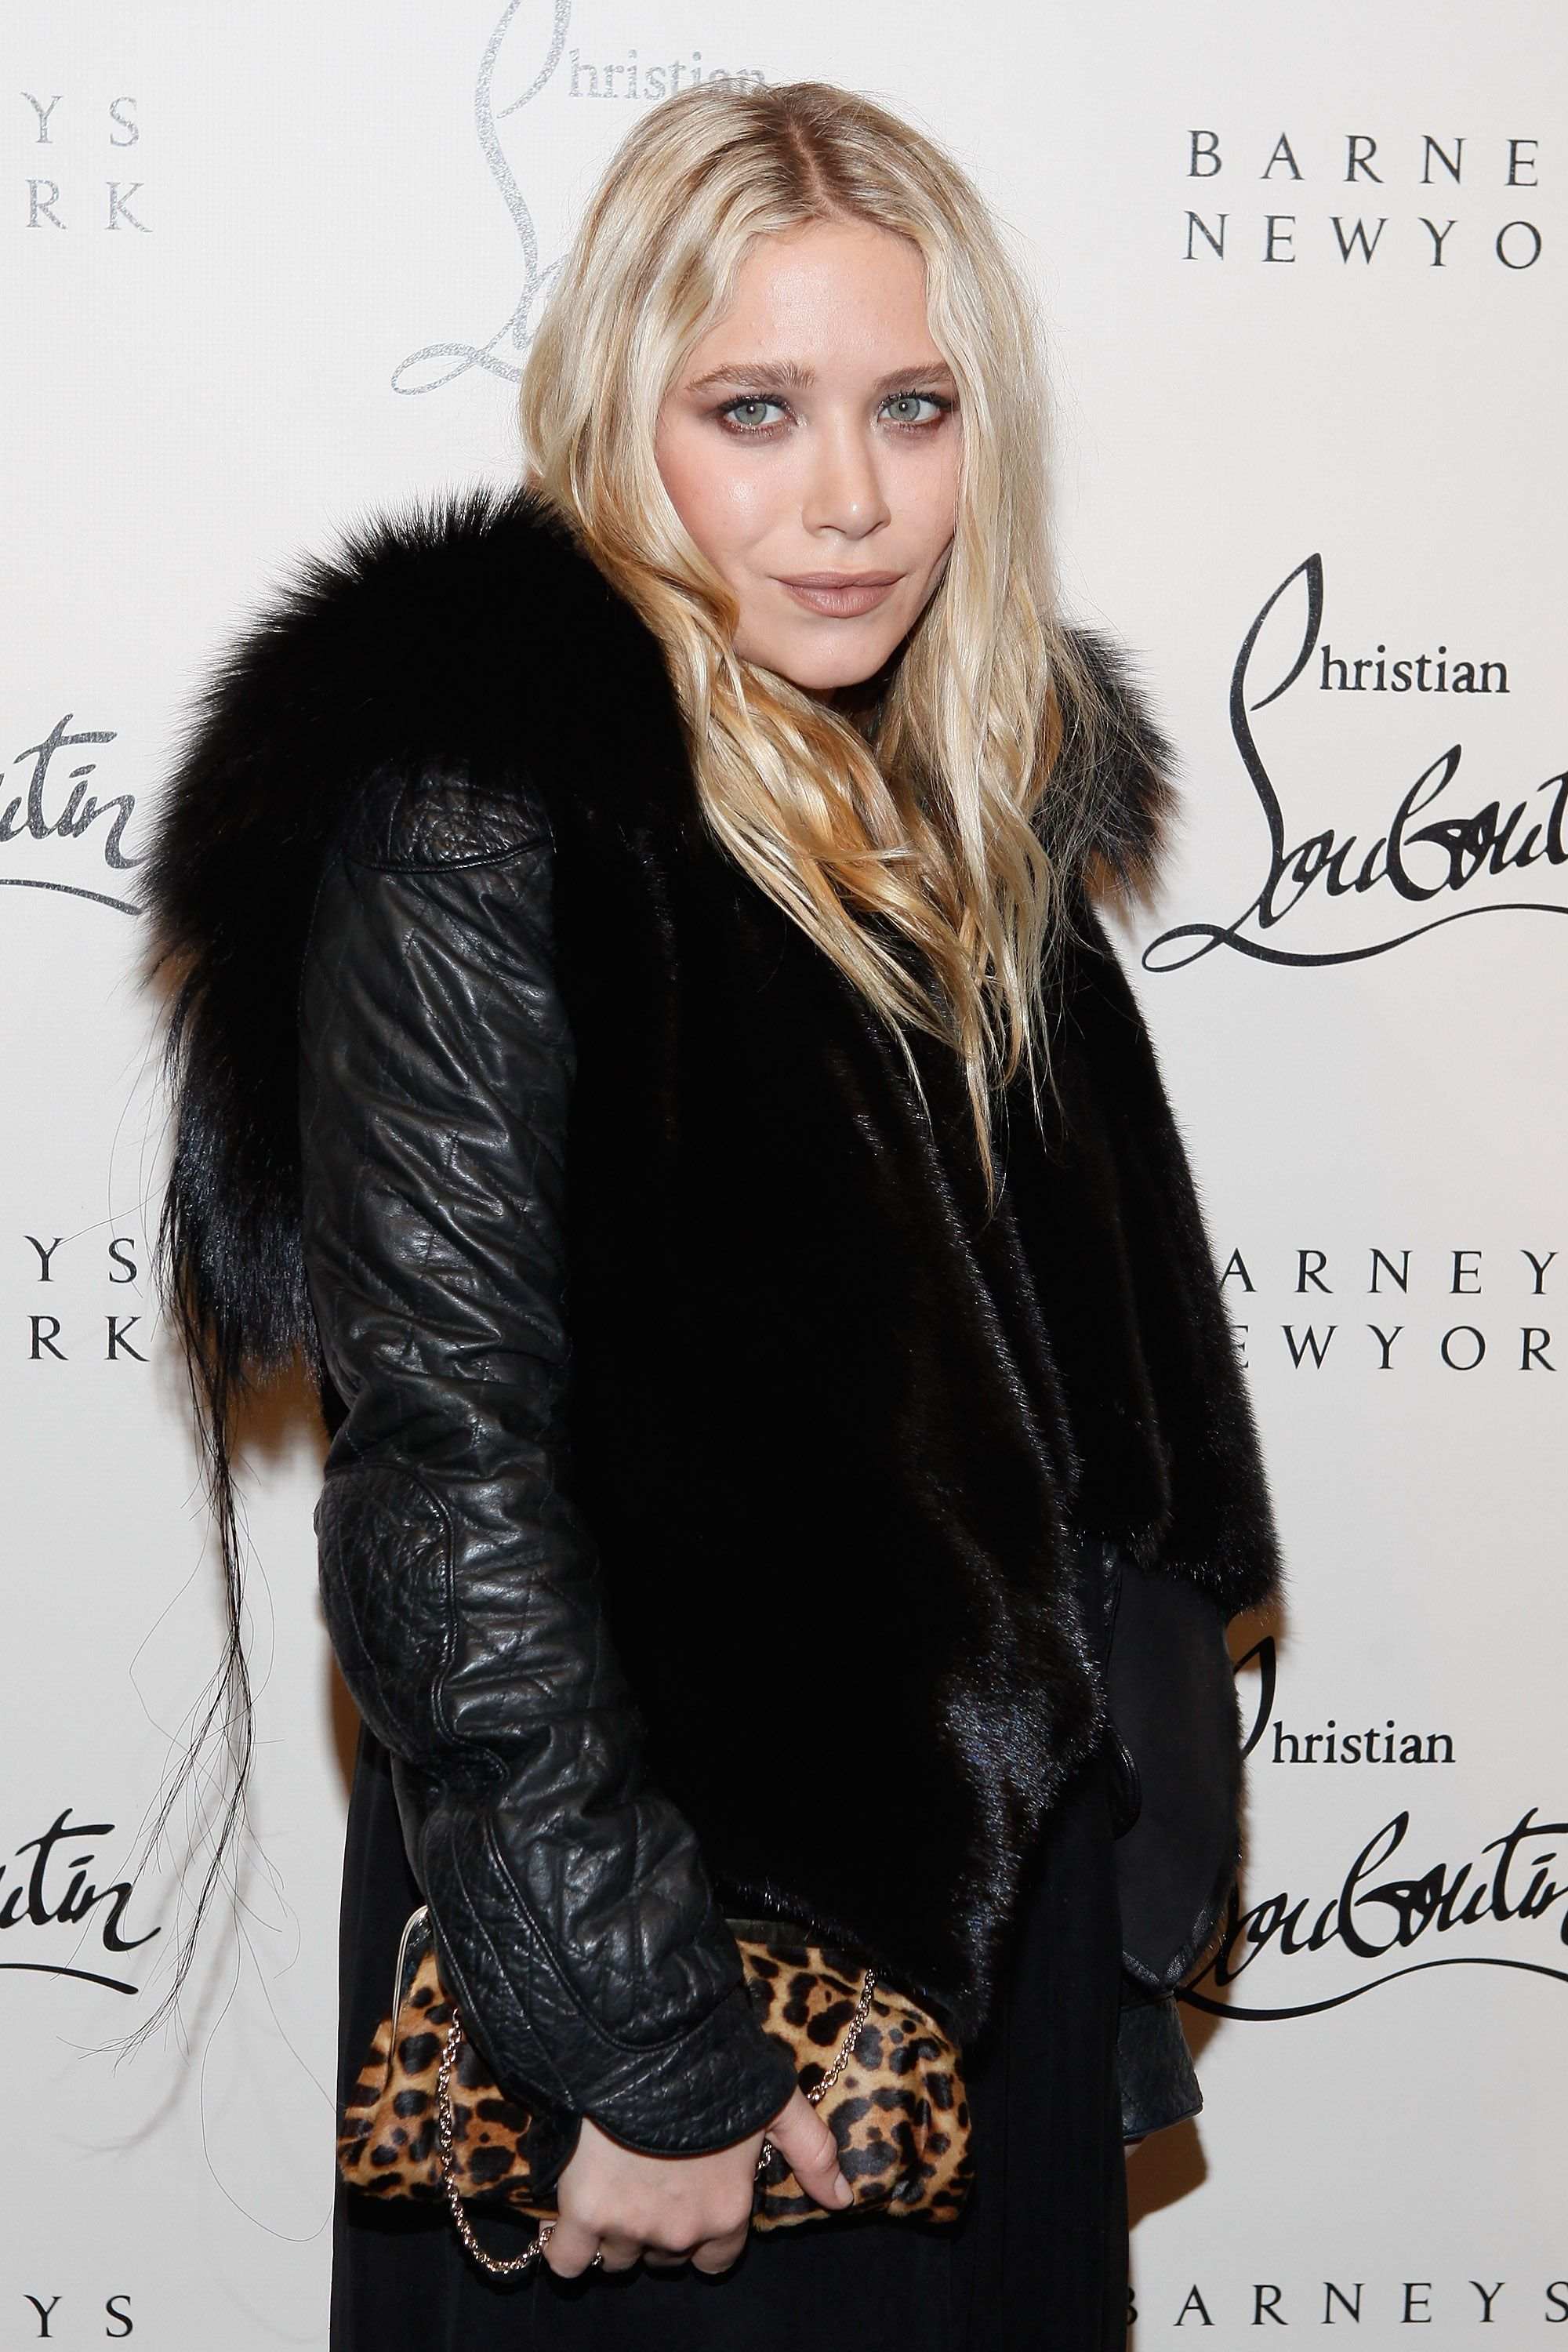 Mary-Kate Olsen during the Christian attends the Louboutin Cocktail party at Barneys New York on November 1, 2011 in New York City. | Source: Getty Images